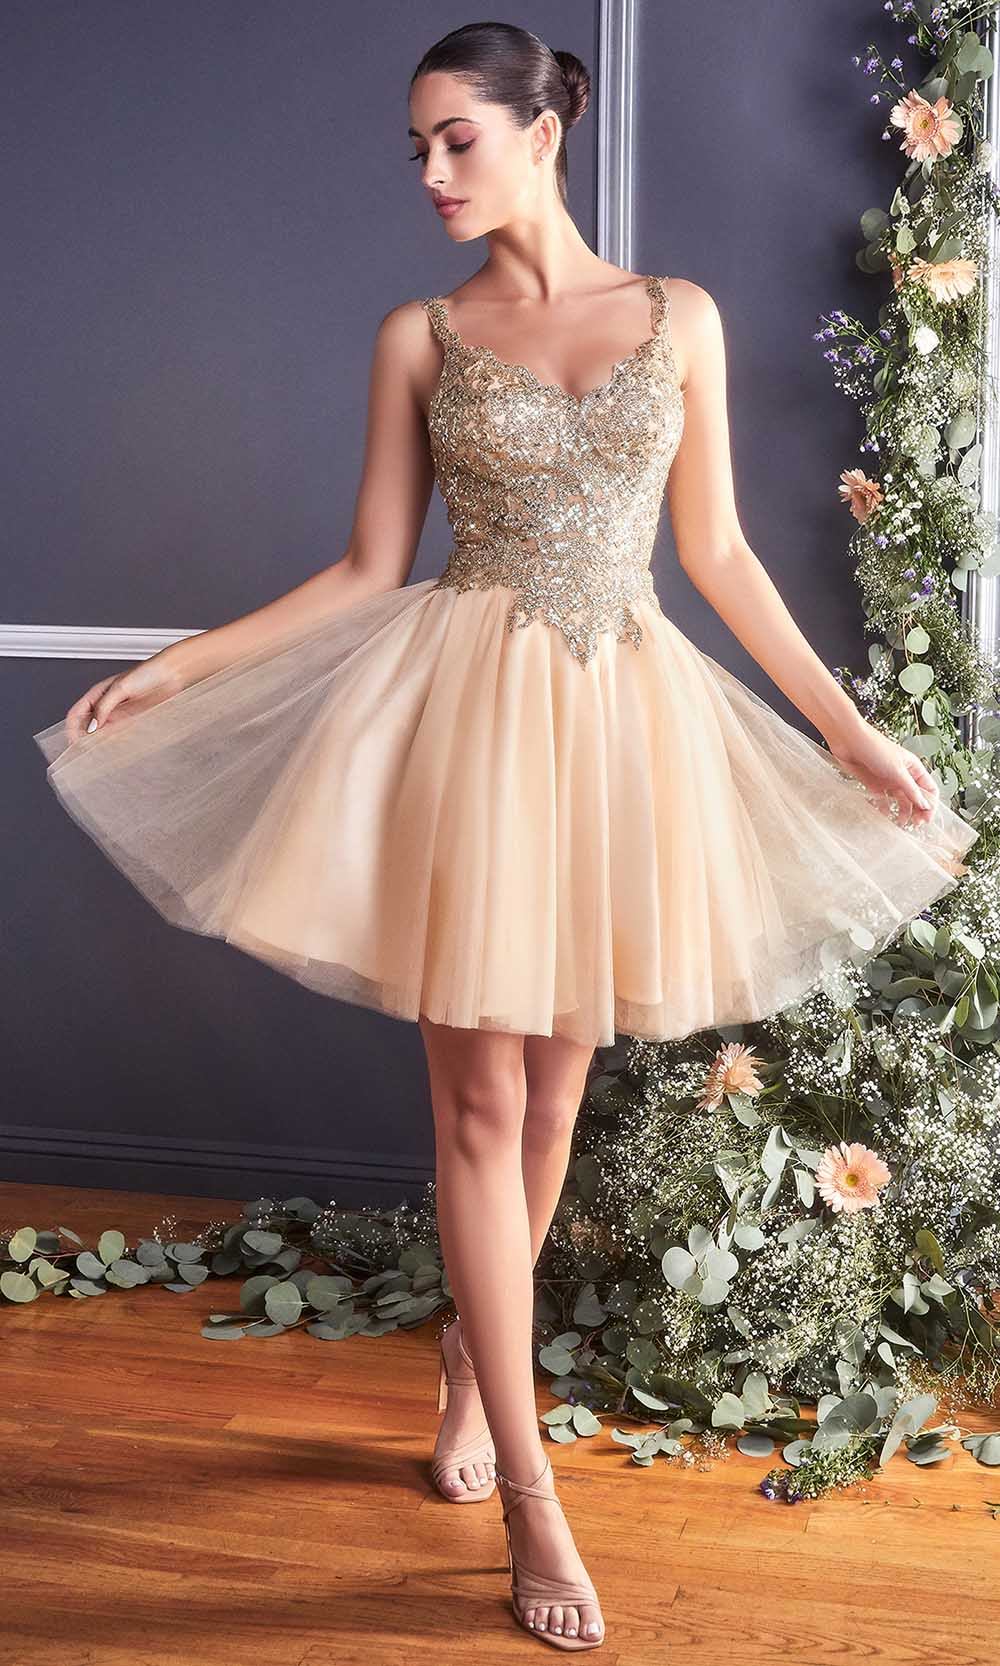 Cinderella Divine - 9239 Metallic Appliqued Fit And Flare Short Dress In Champagne and Gold